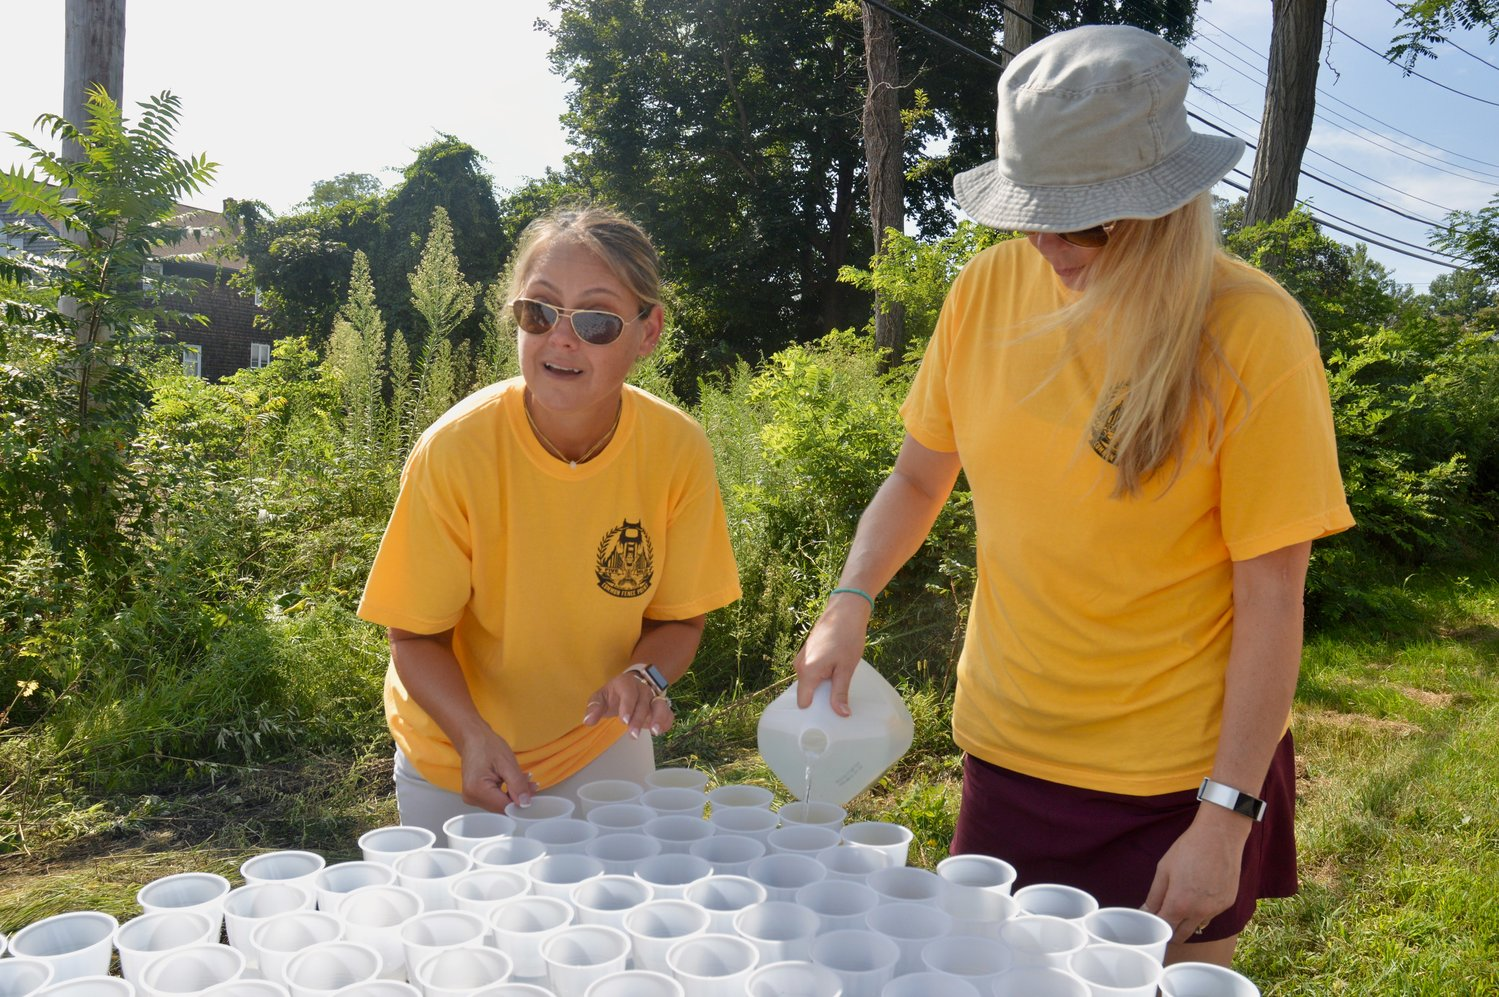 Volunteers Christy Brennan (left) and Tammy Harrigan fill water cups which were handed out to runners during the race.